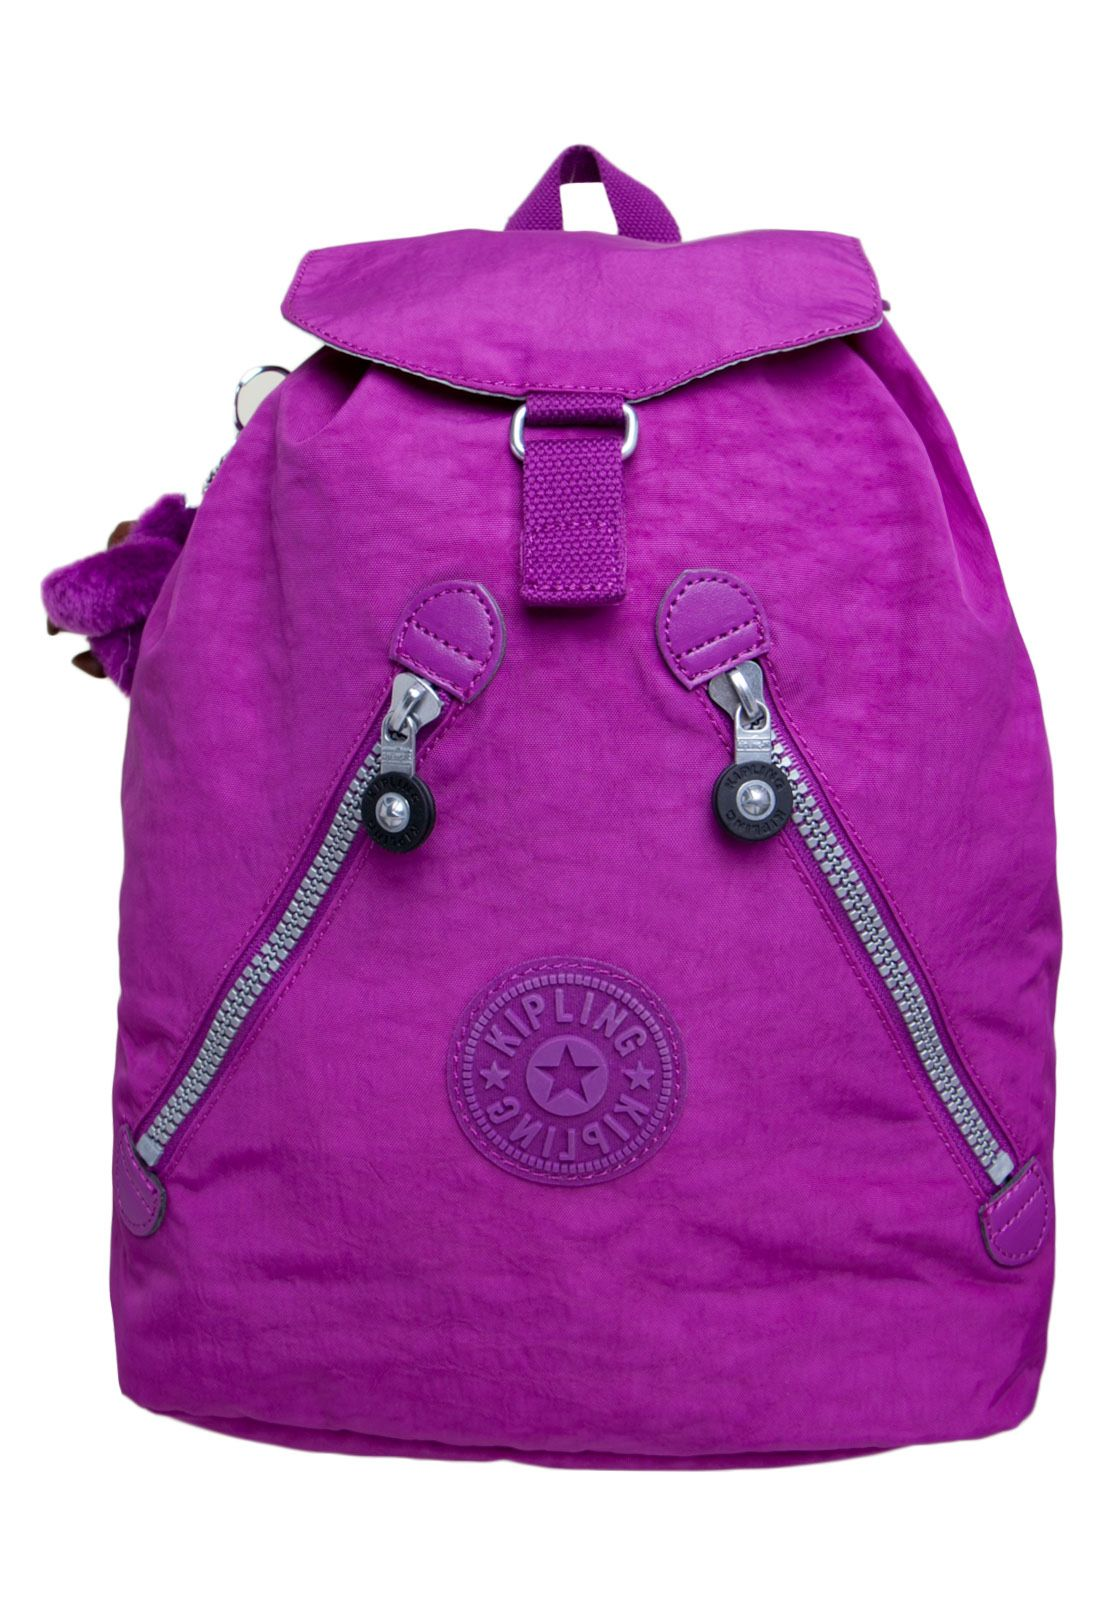 6d6bb1668 Mochila Kipling Roxa | Kipling | Backpacks, Bags e Pencil bags